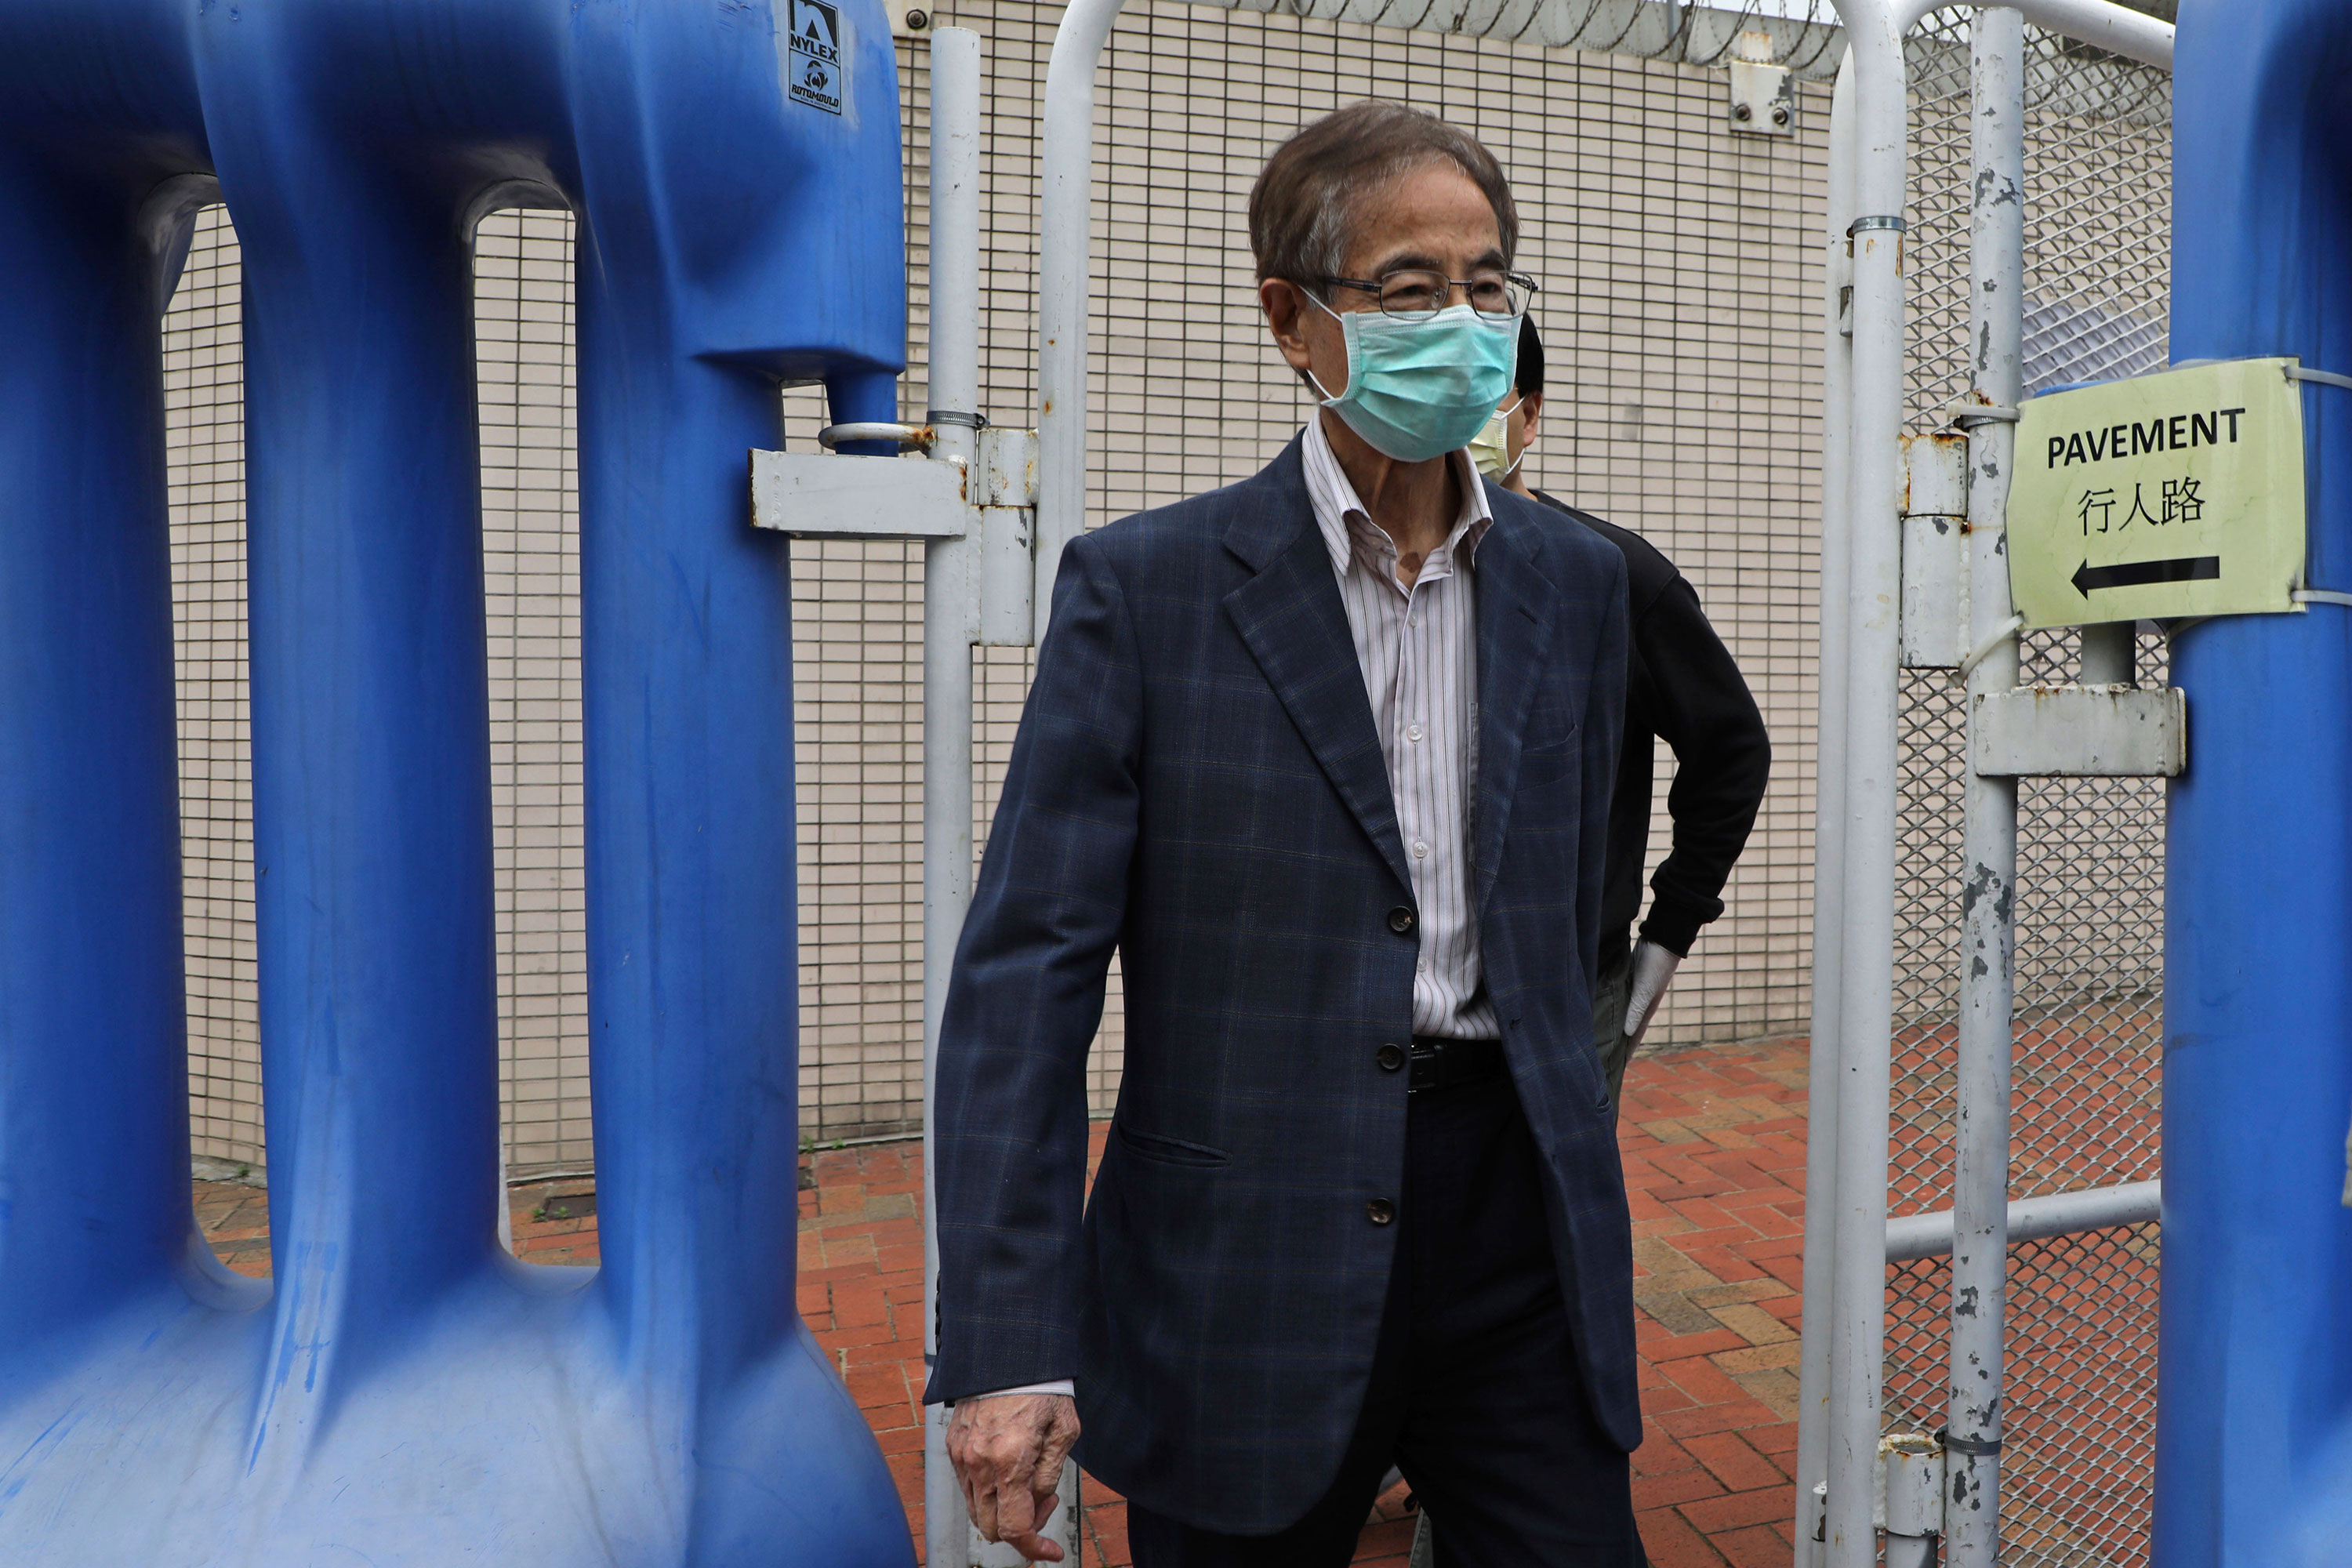 Hong Kong Democratic Party founder Martin Lee leaves a police station in Hong Kong, on April 18.